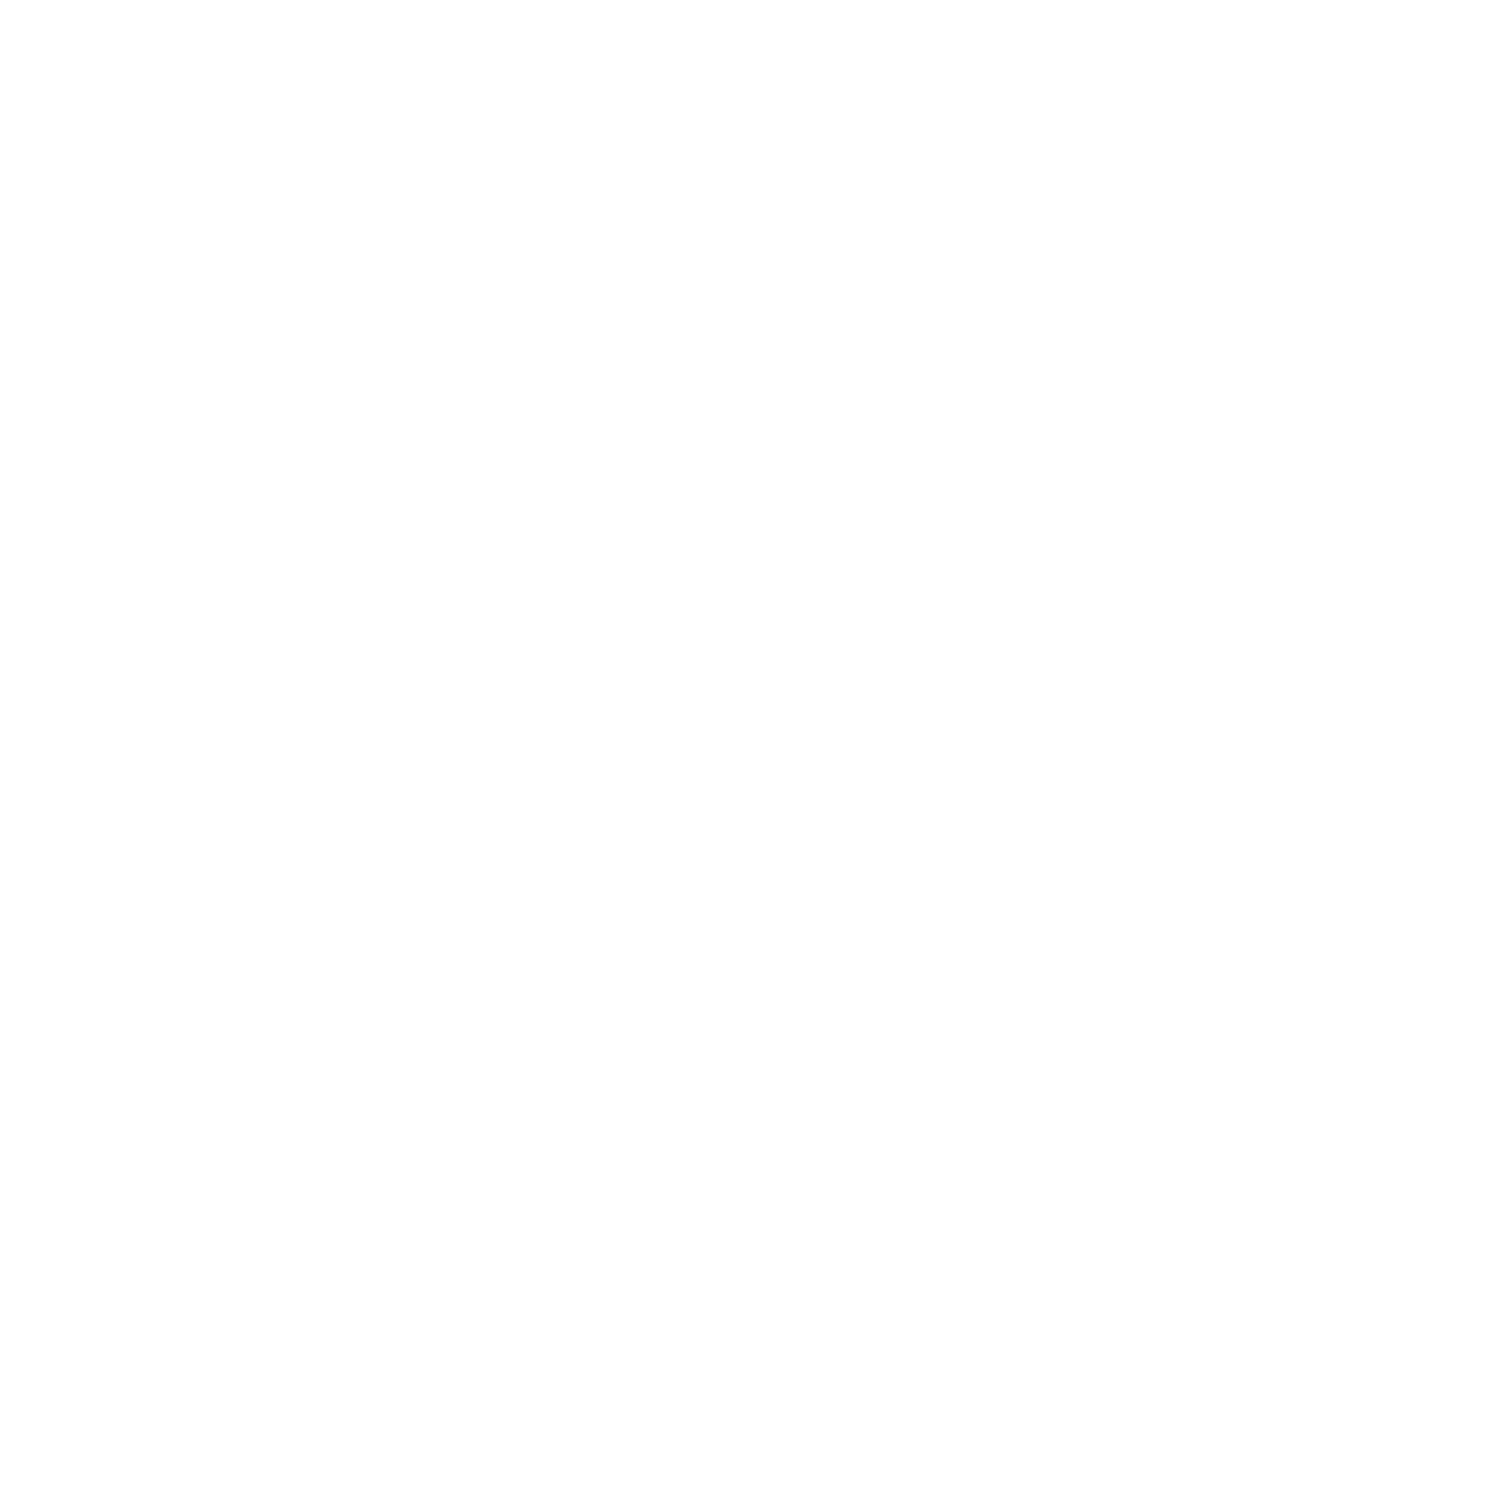 Local Goods Company